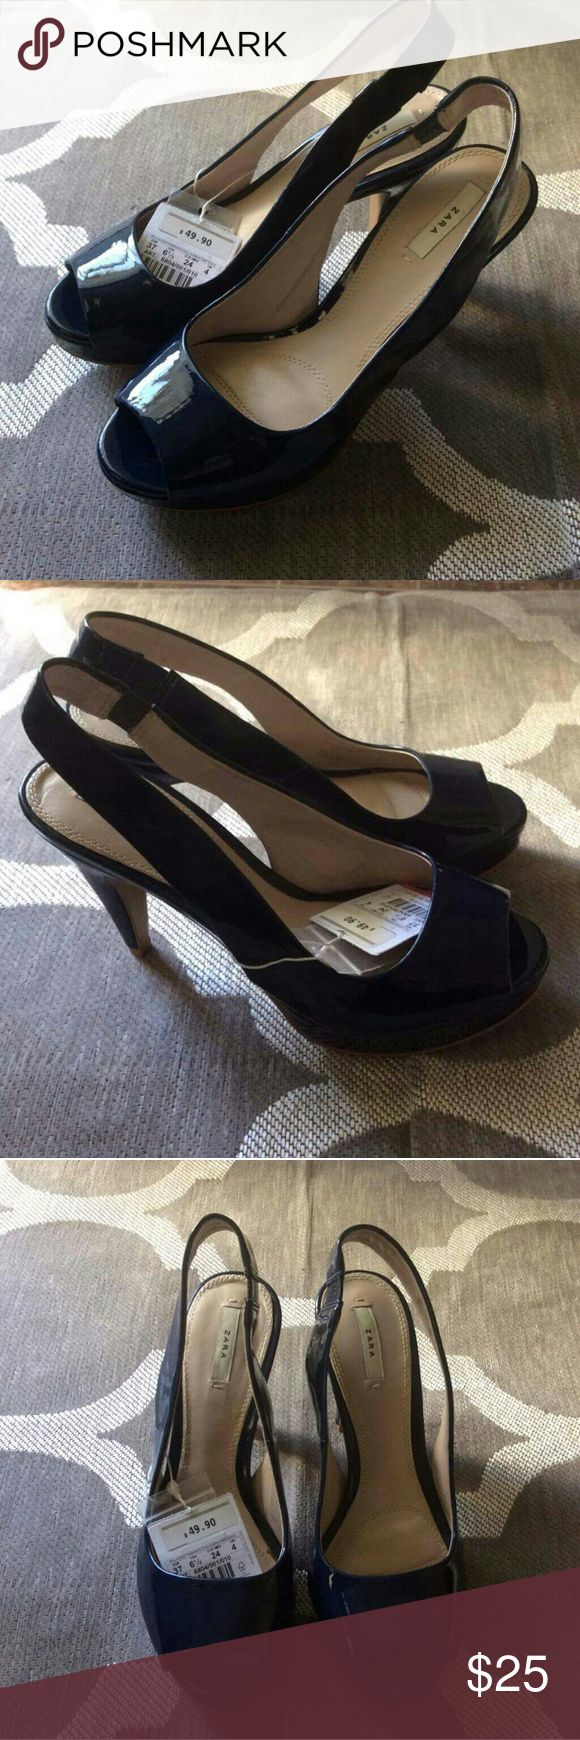 Zara Dark Blue Patent Leather Heels Patent leather dark blue heels, new with tags but bottom does have wear from being on display. Zara Shoes Heels